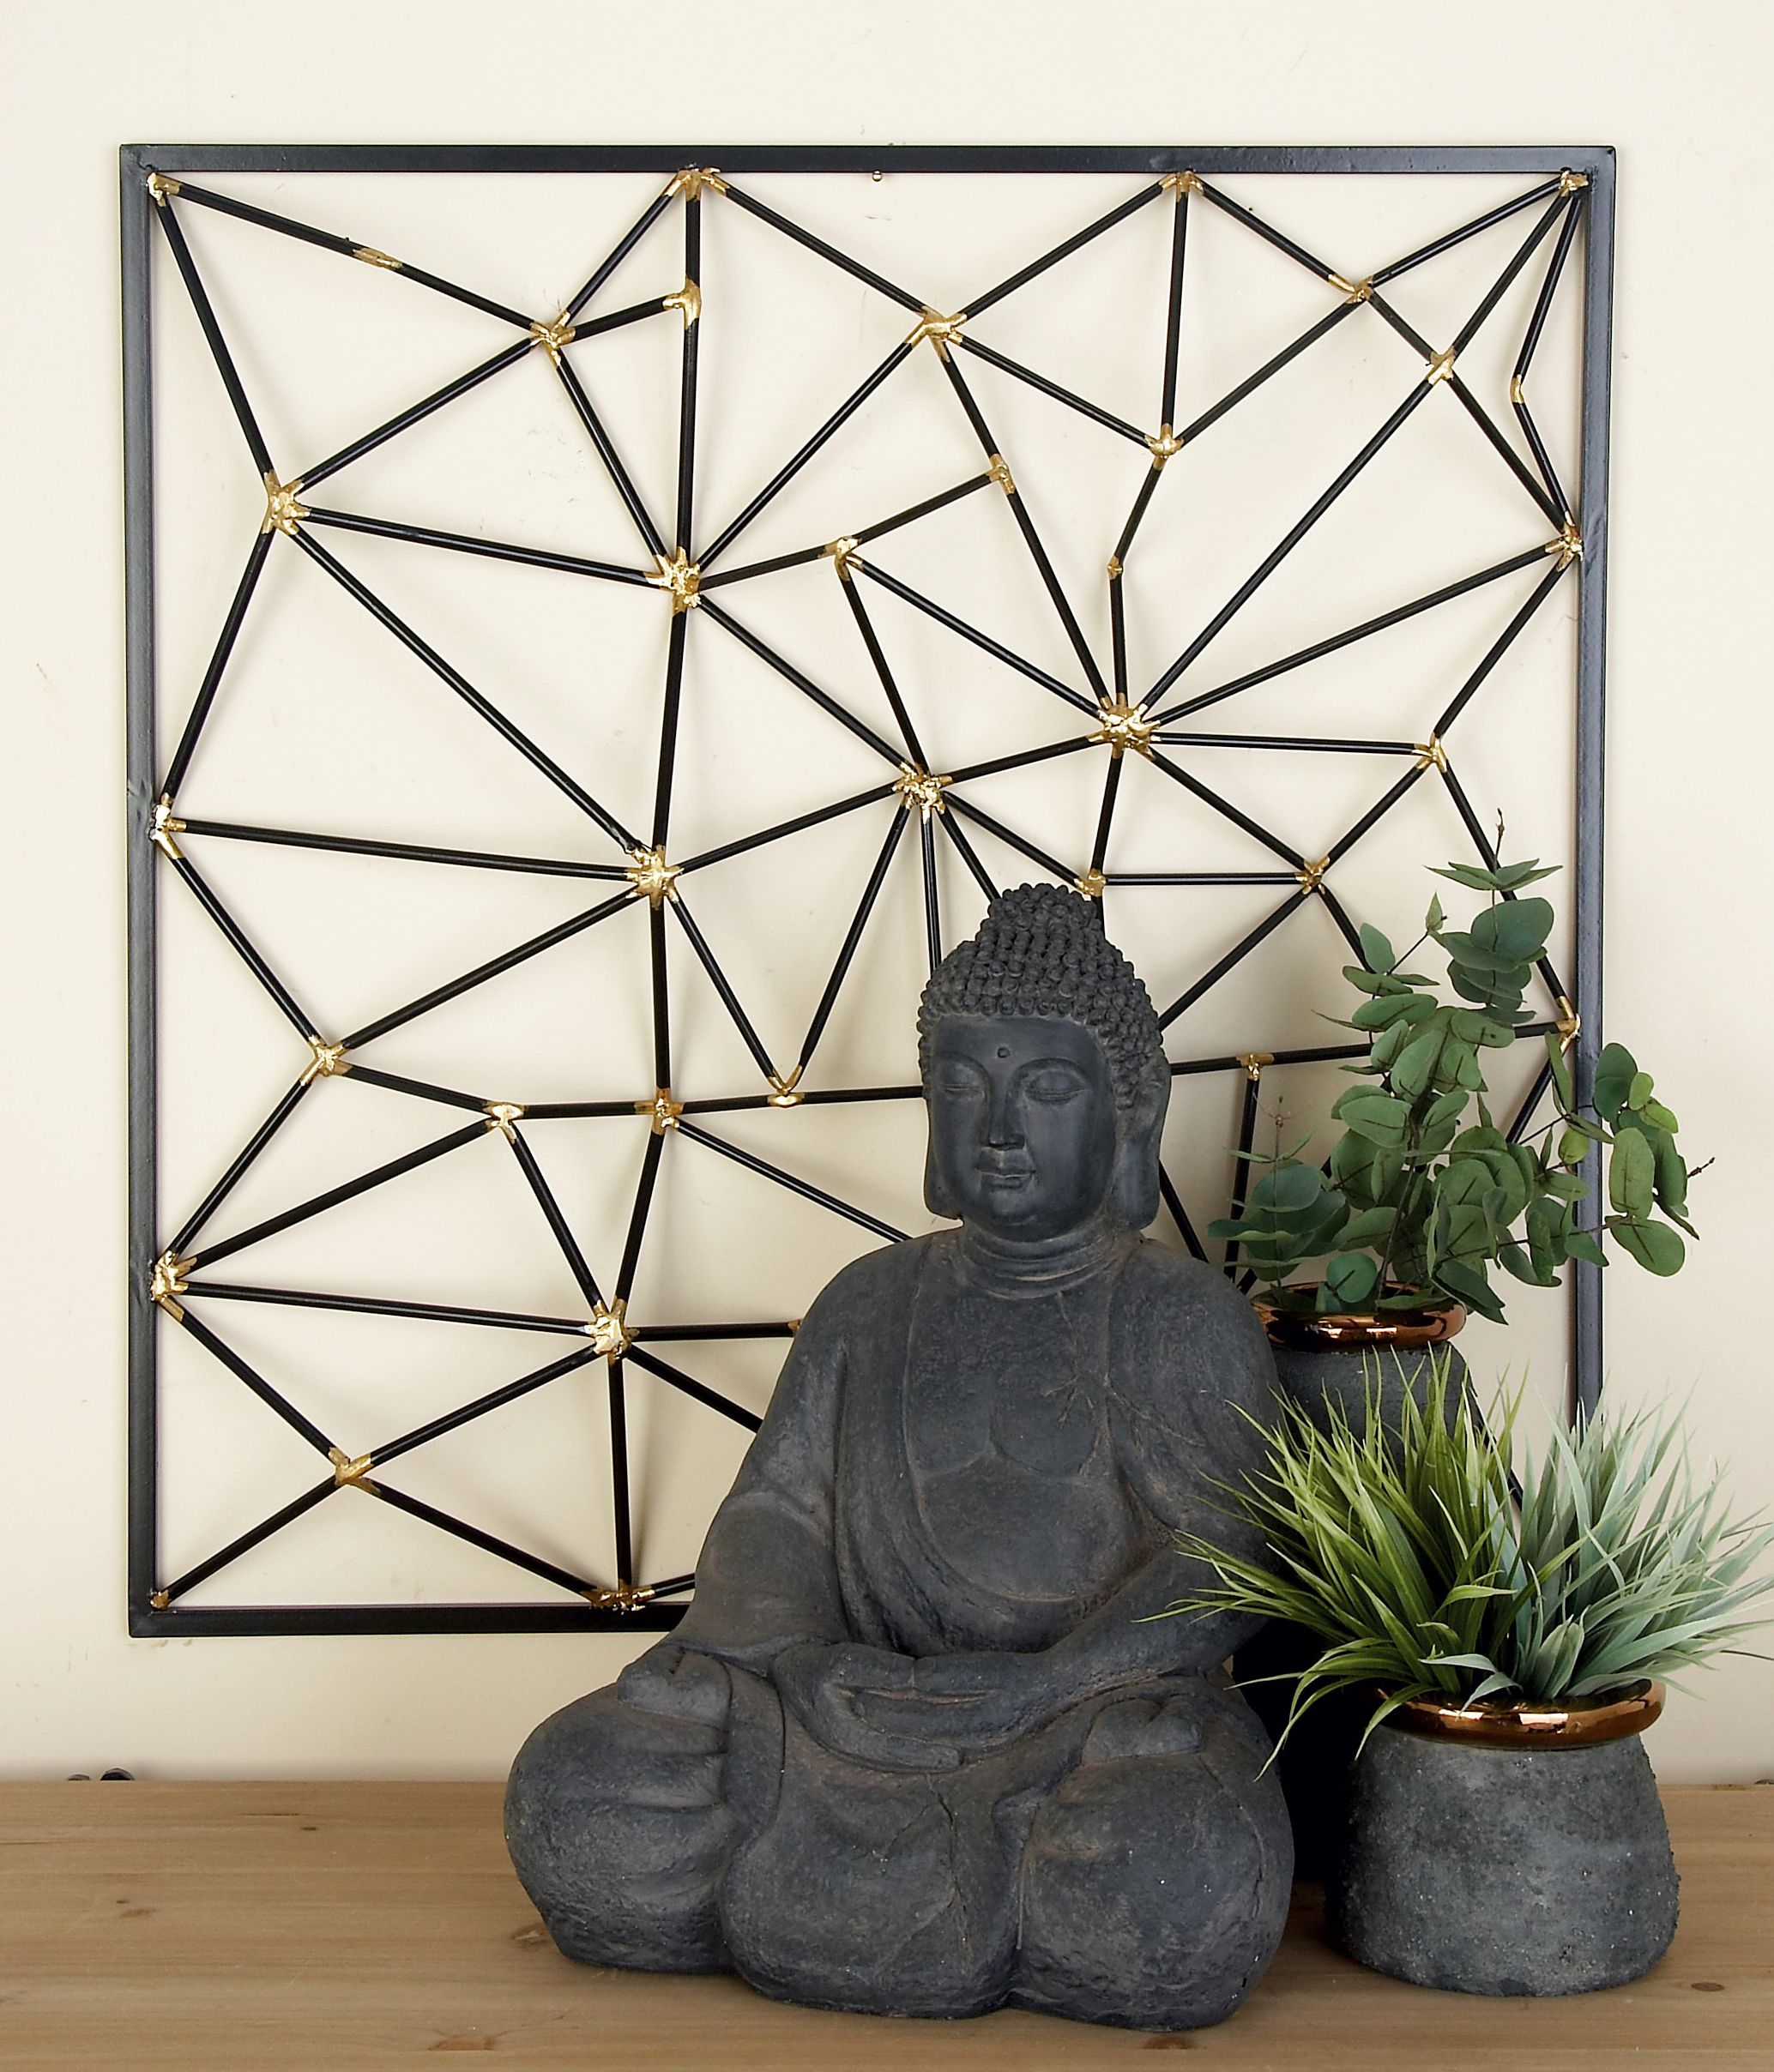 """Metal Wall Décor By Cosmoliving Within Most Popular Cosmolivingcosmopolitan Modern Style Large Square Metallic Gold And Black Metal 3d Abstract Art Wall Decor, 32"""" X 32"""" – Walmart (View 19 of 20)"""